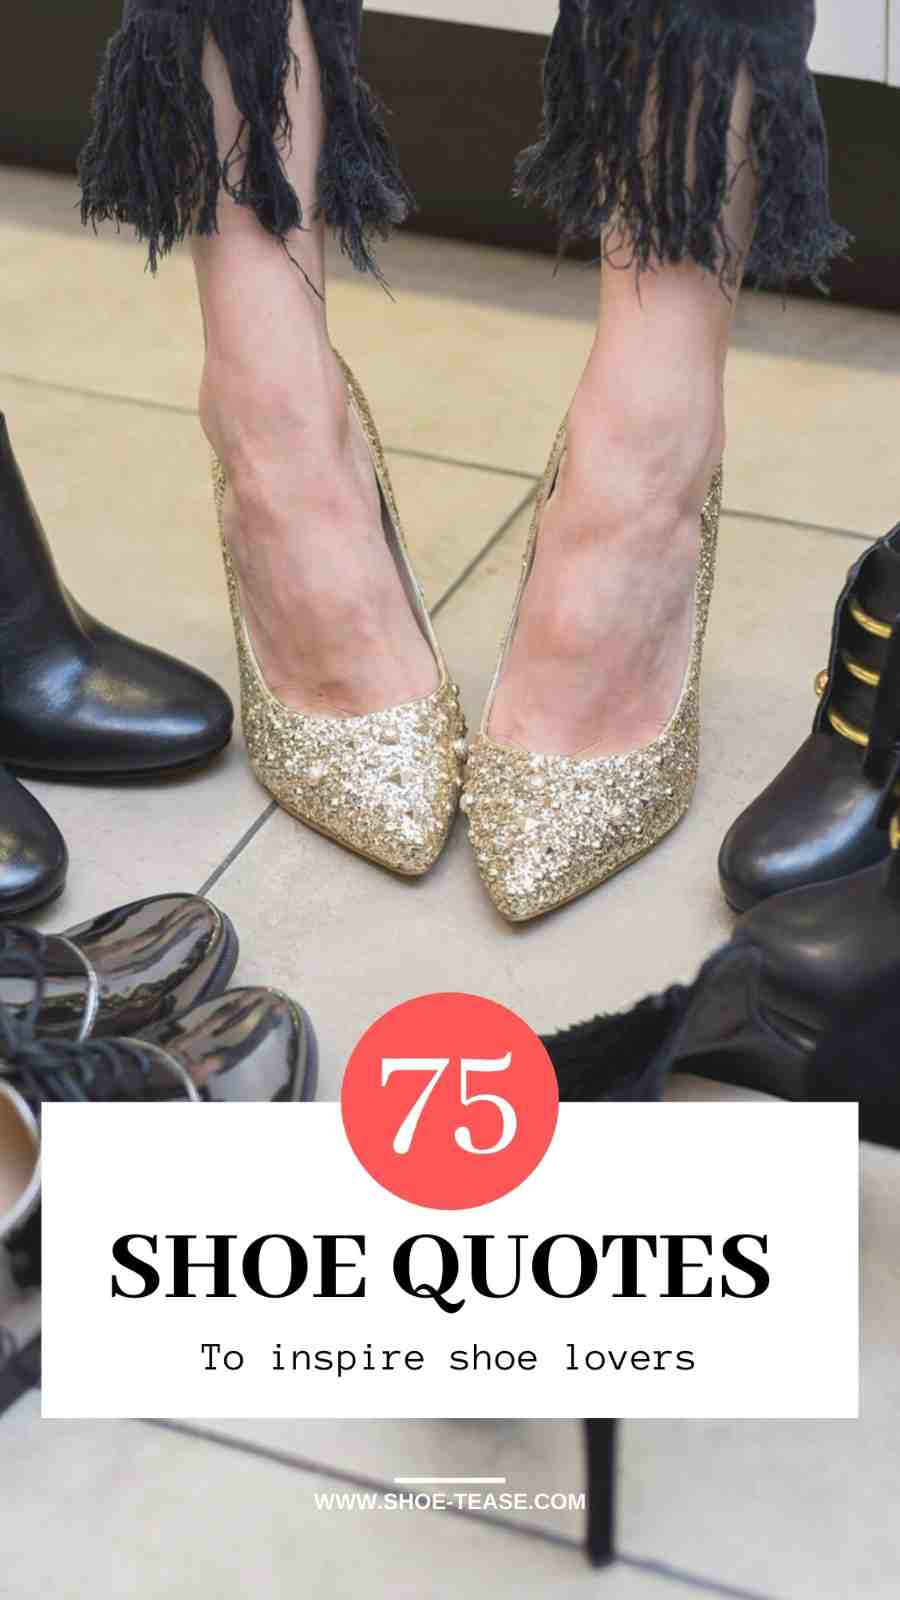 Best Shoe Quotes for Shoe Lovers text above image of glitter gold heels worn on feet